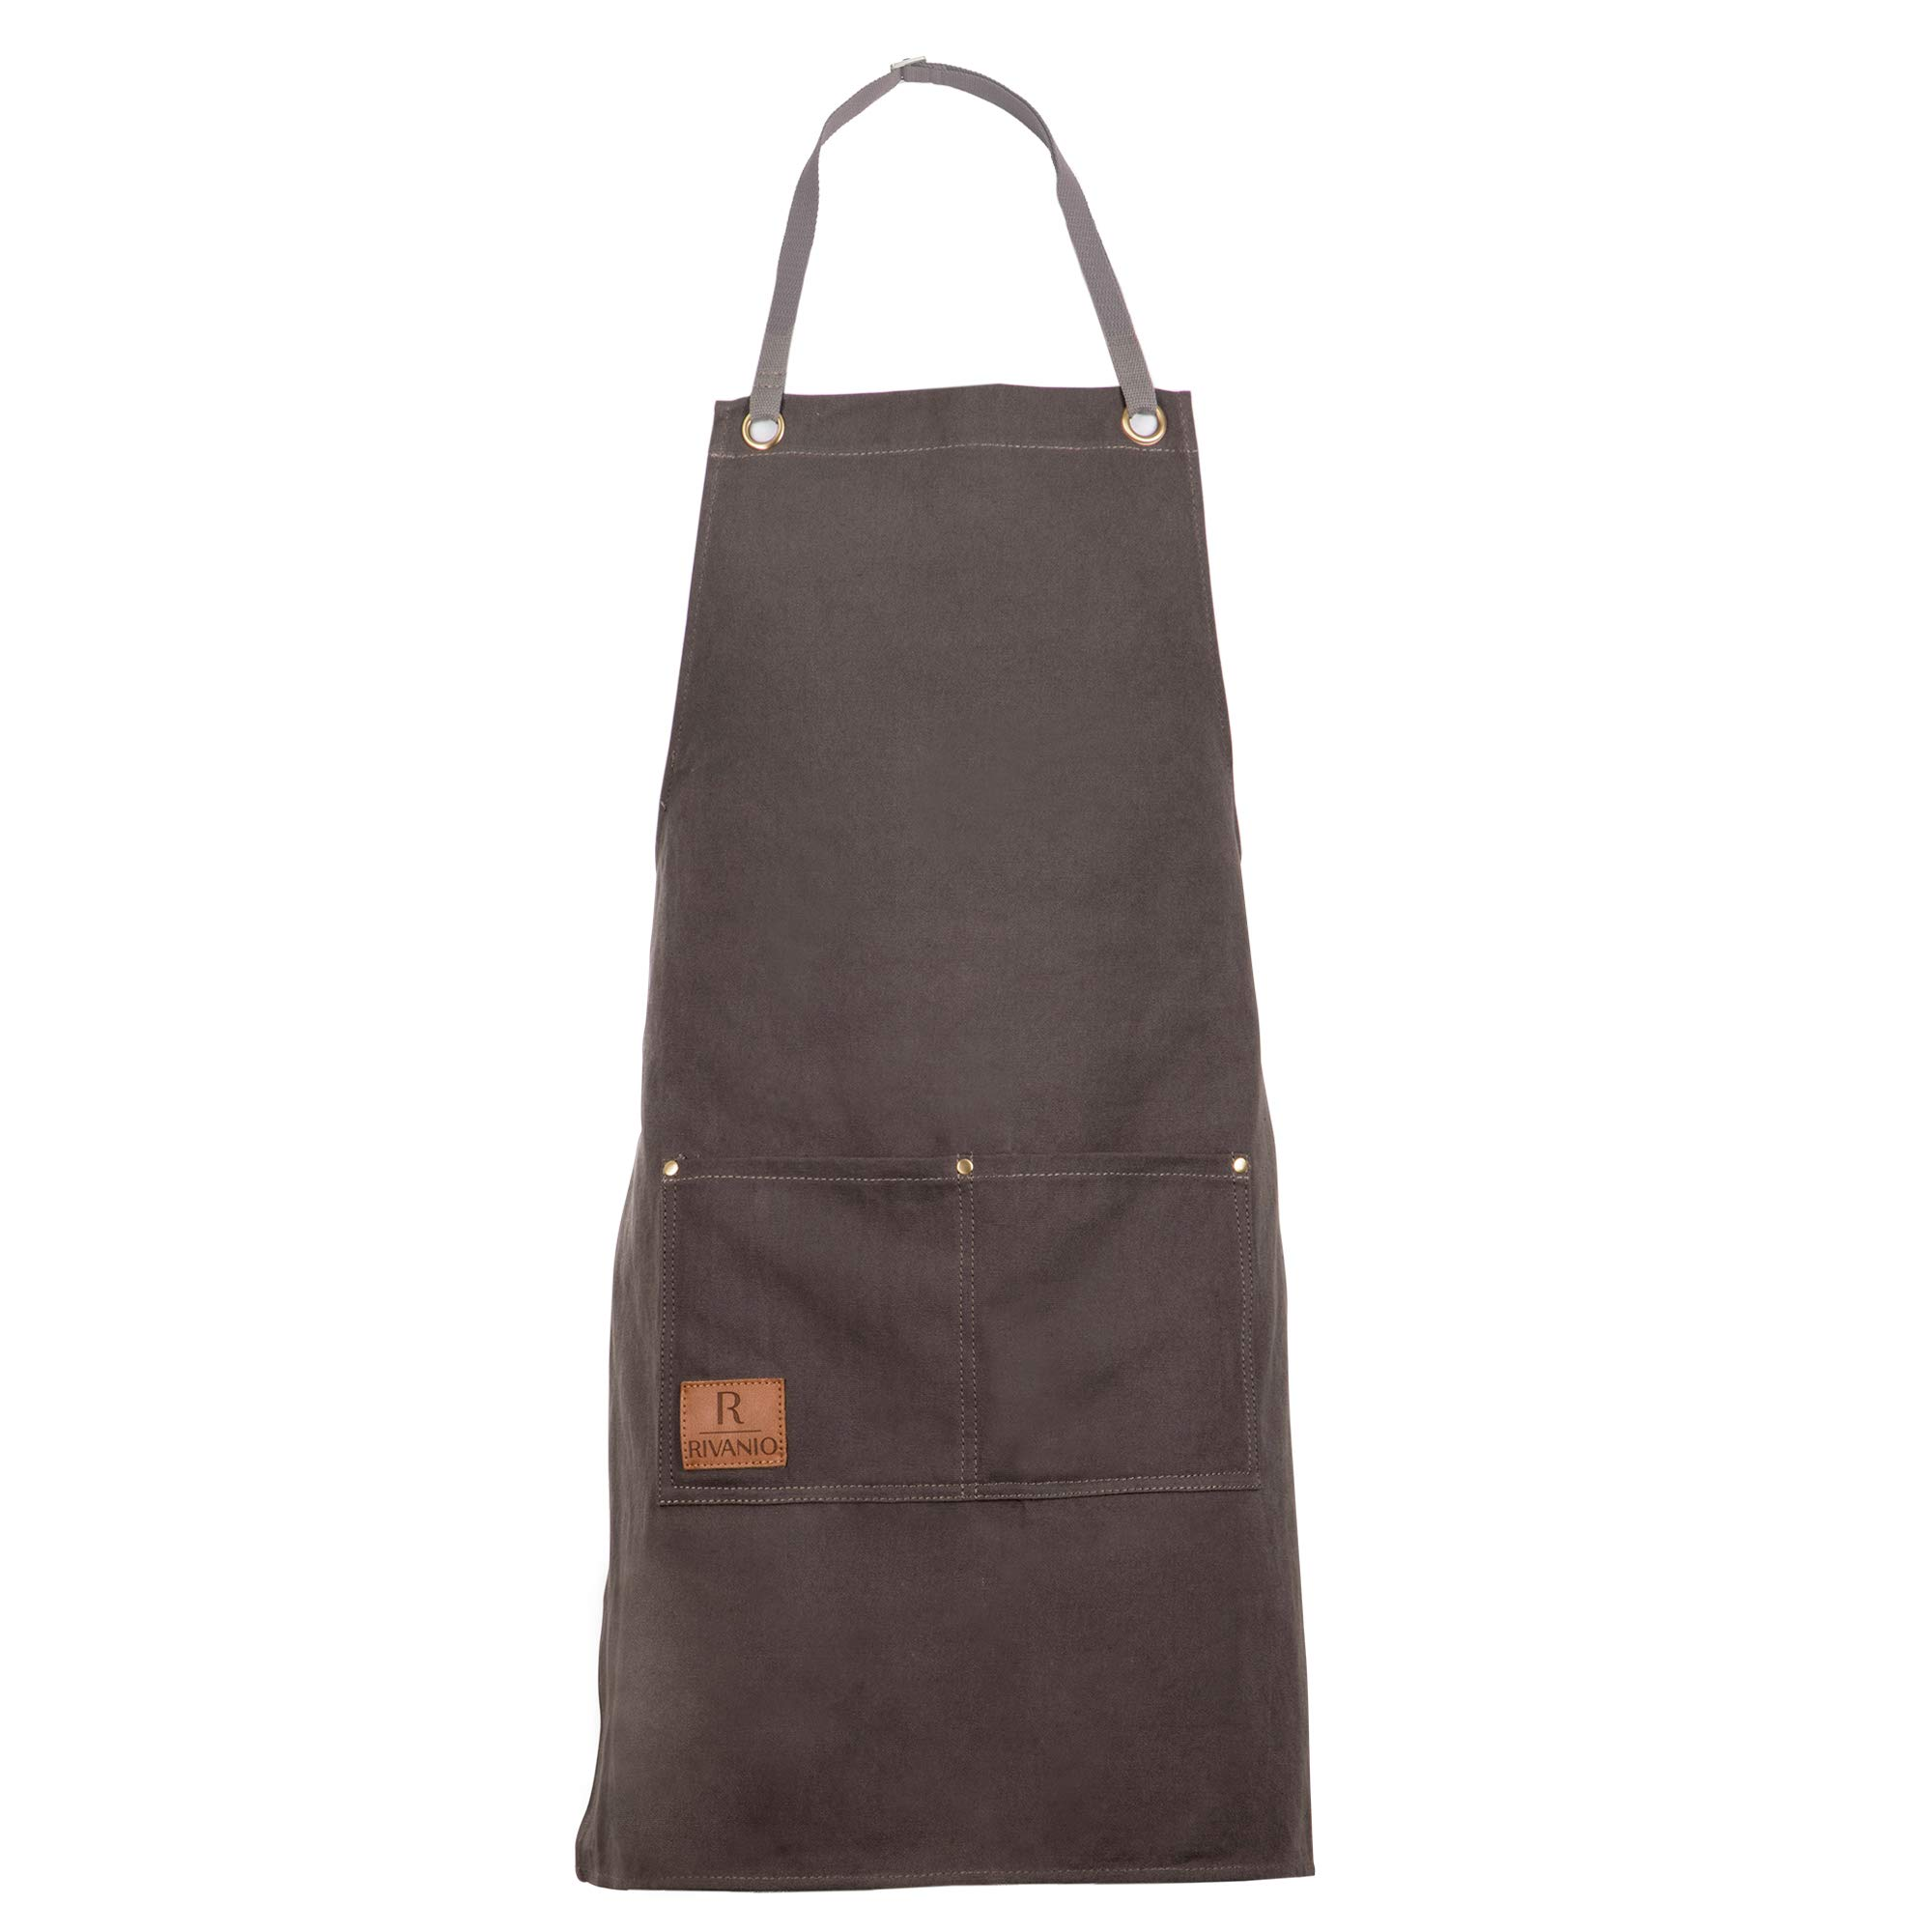 Rivanio Canvas Cooking Apron, Long with Large Pockets - Kitchen, Shop, Grilling, Workshop Aprons for Men and Women - Adjustable Neck and Waist Straps - Stylish, Professional, Lightweight Bibs